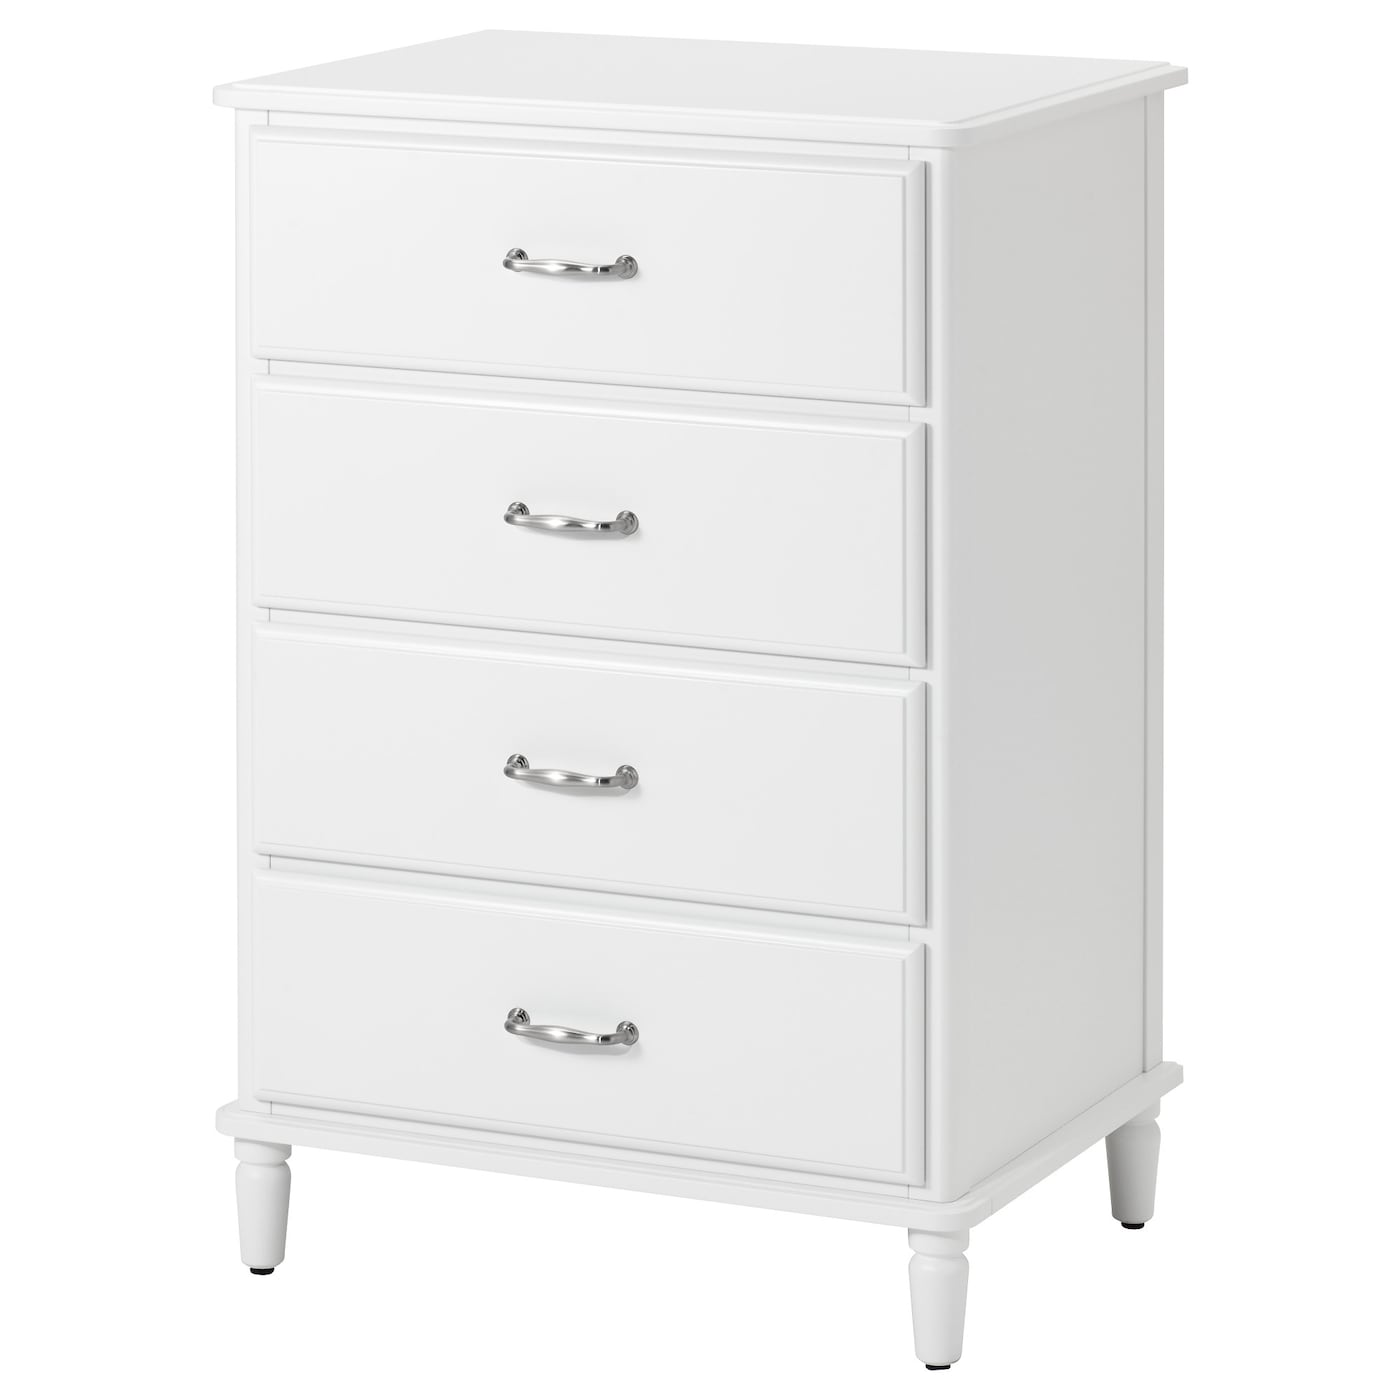 Ikea Tyssedal Chest Of 4 Drawers